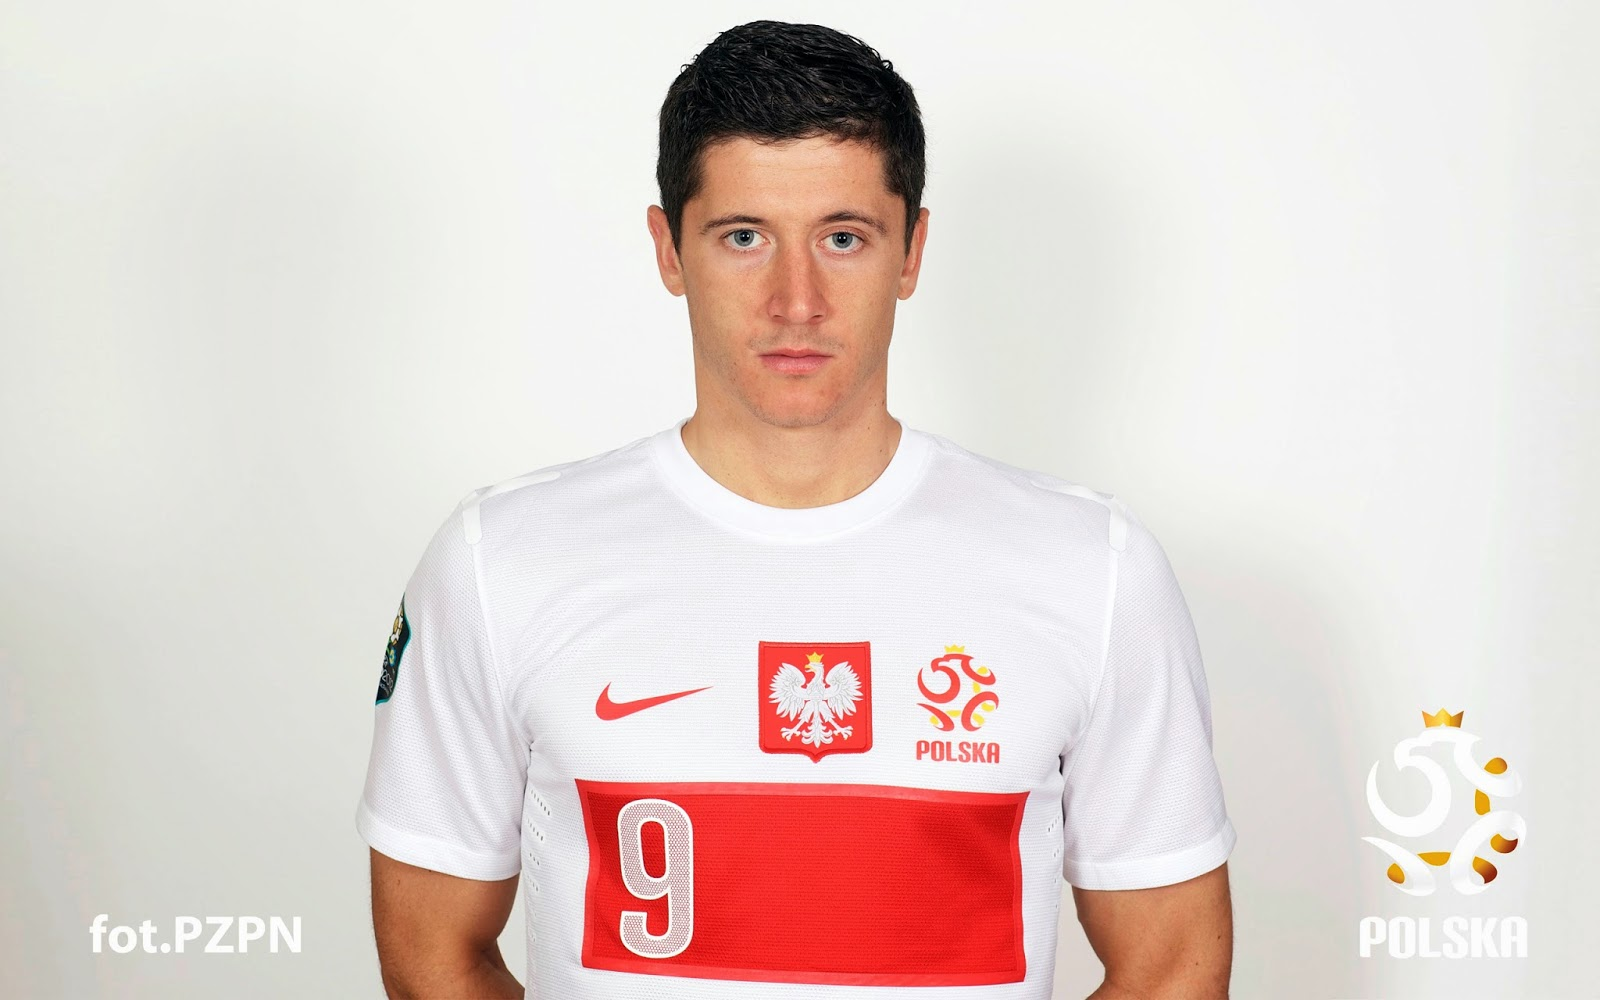 Robert Lewandowski Wallpapers HD